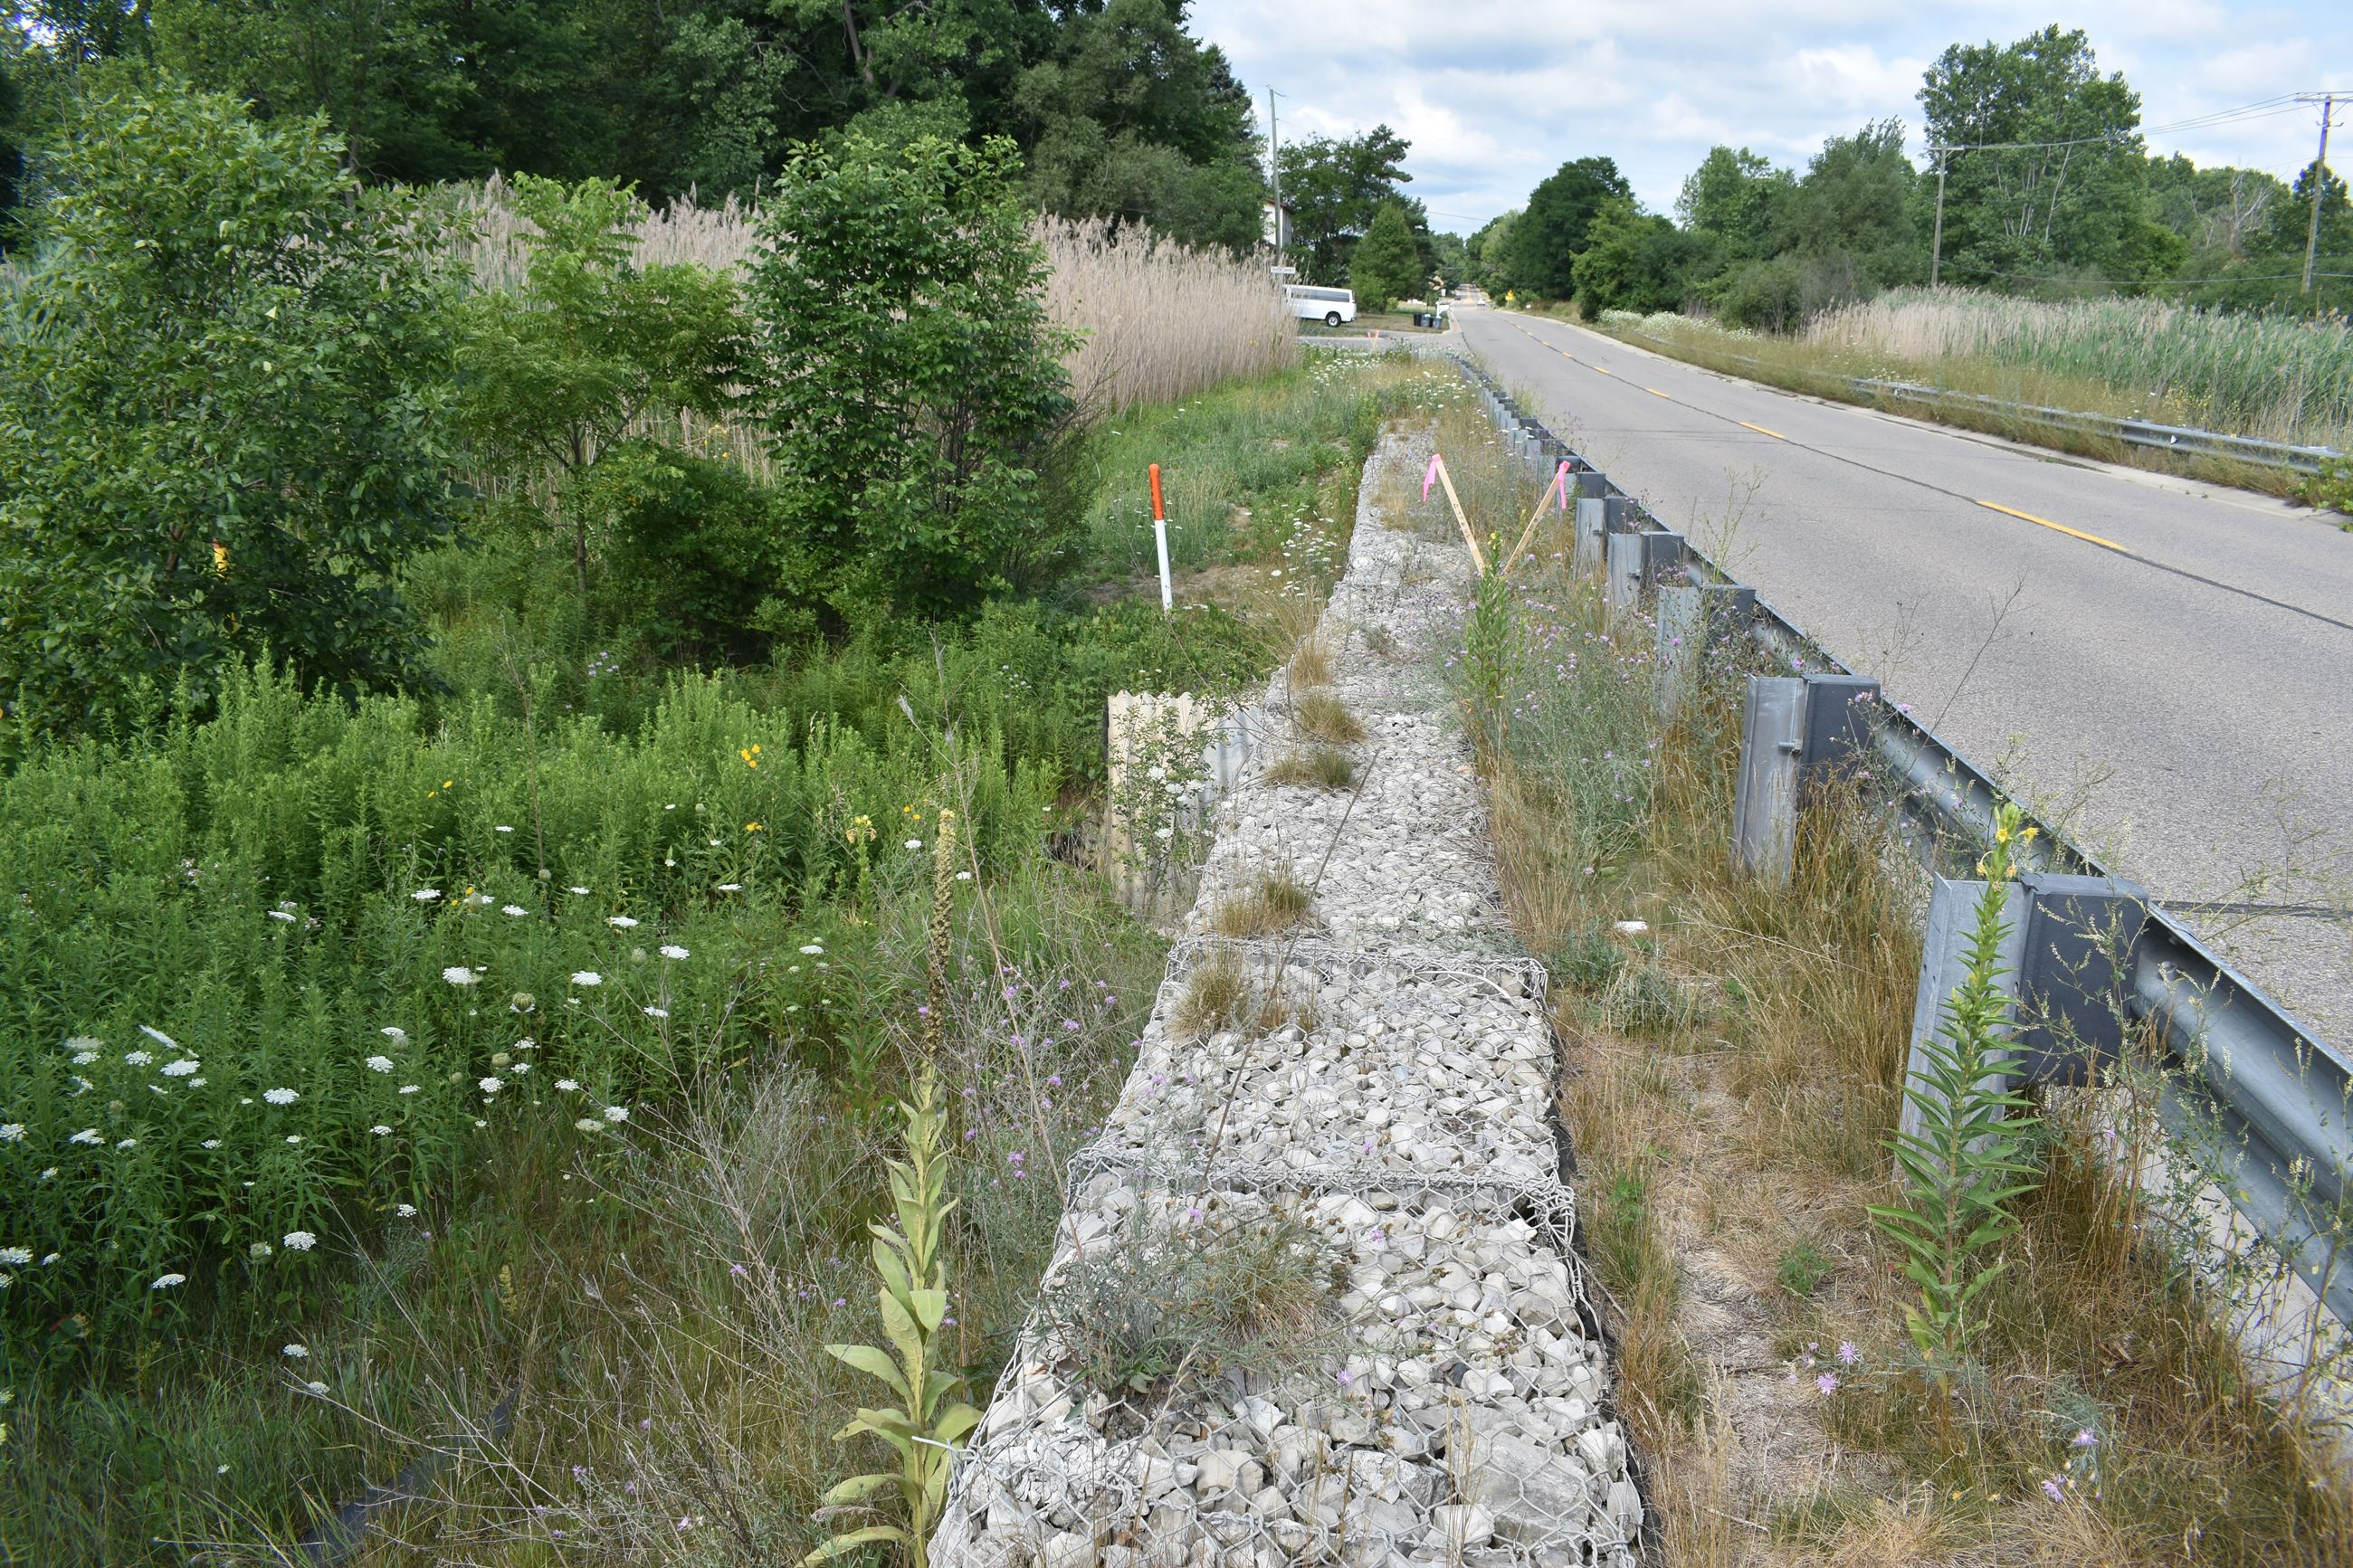 Cooley Lake Road surface and guardrail over culvert